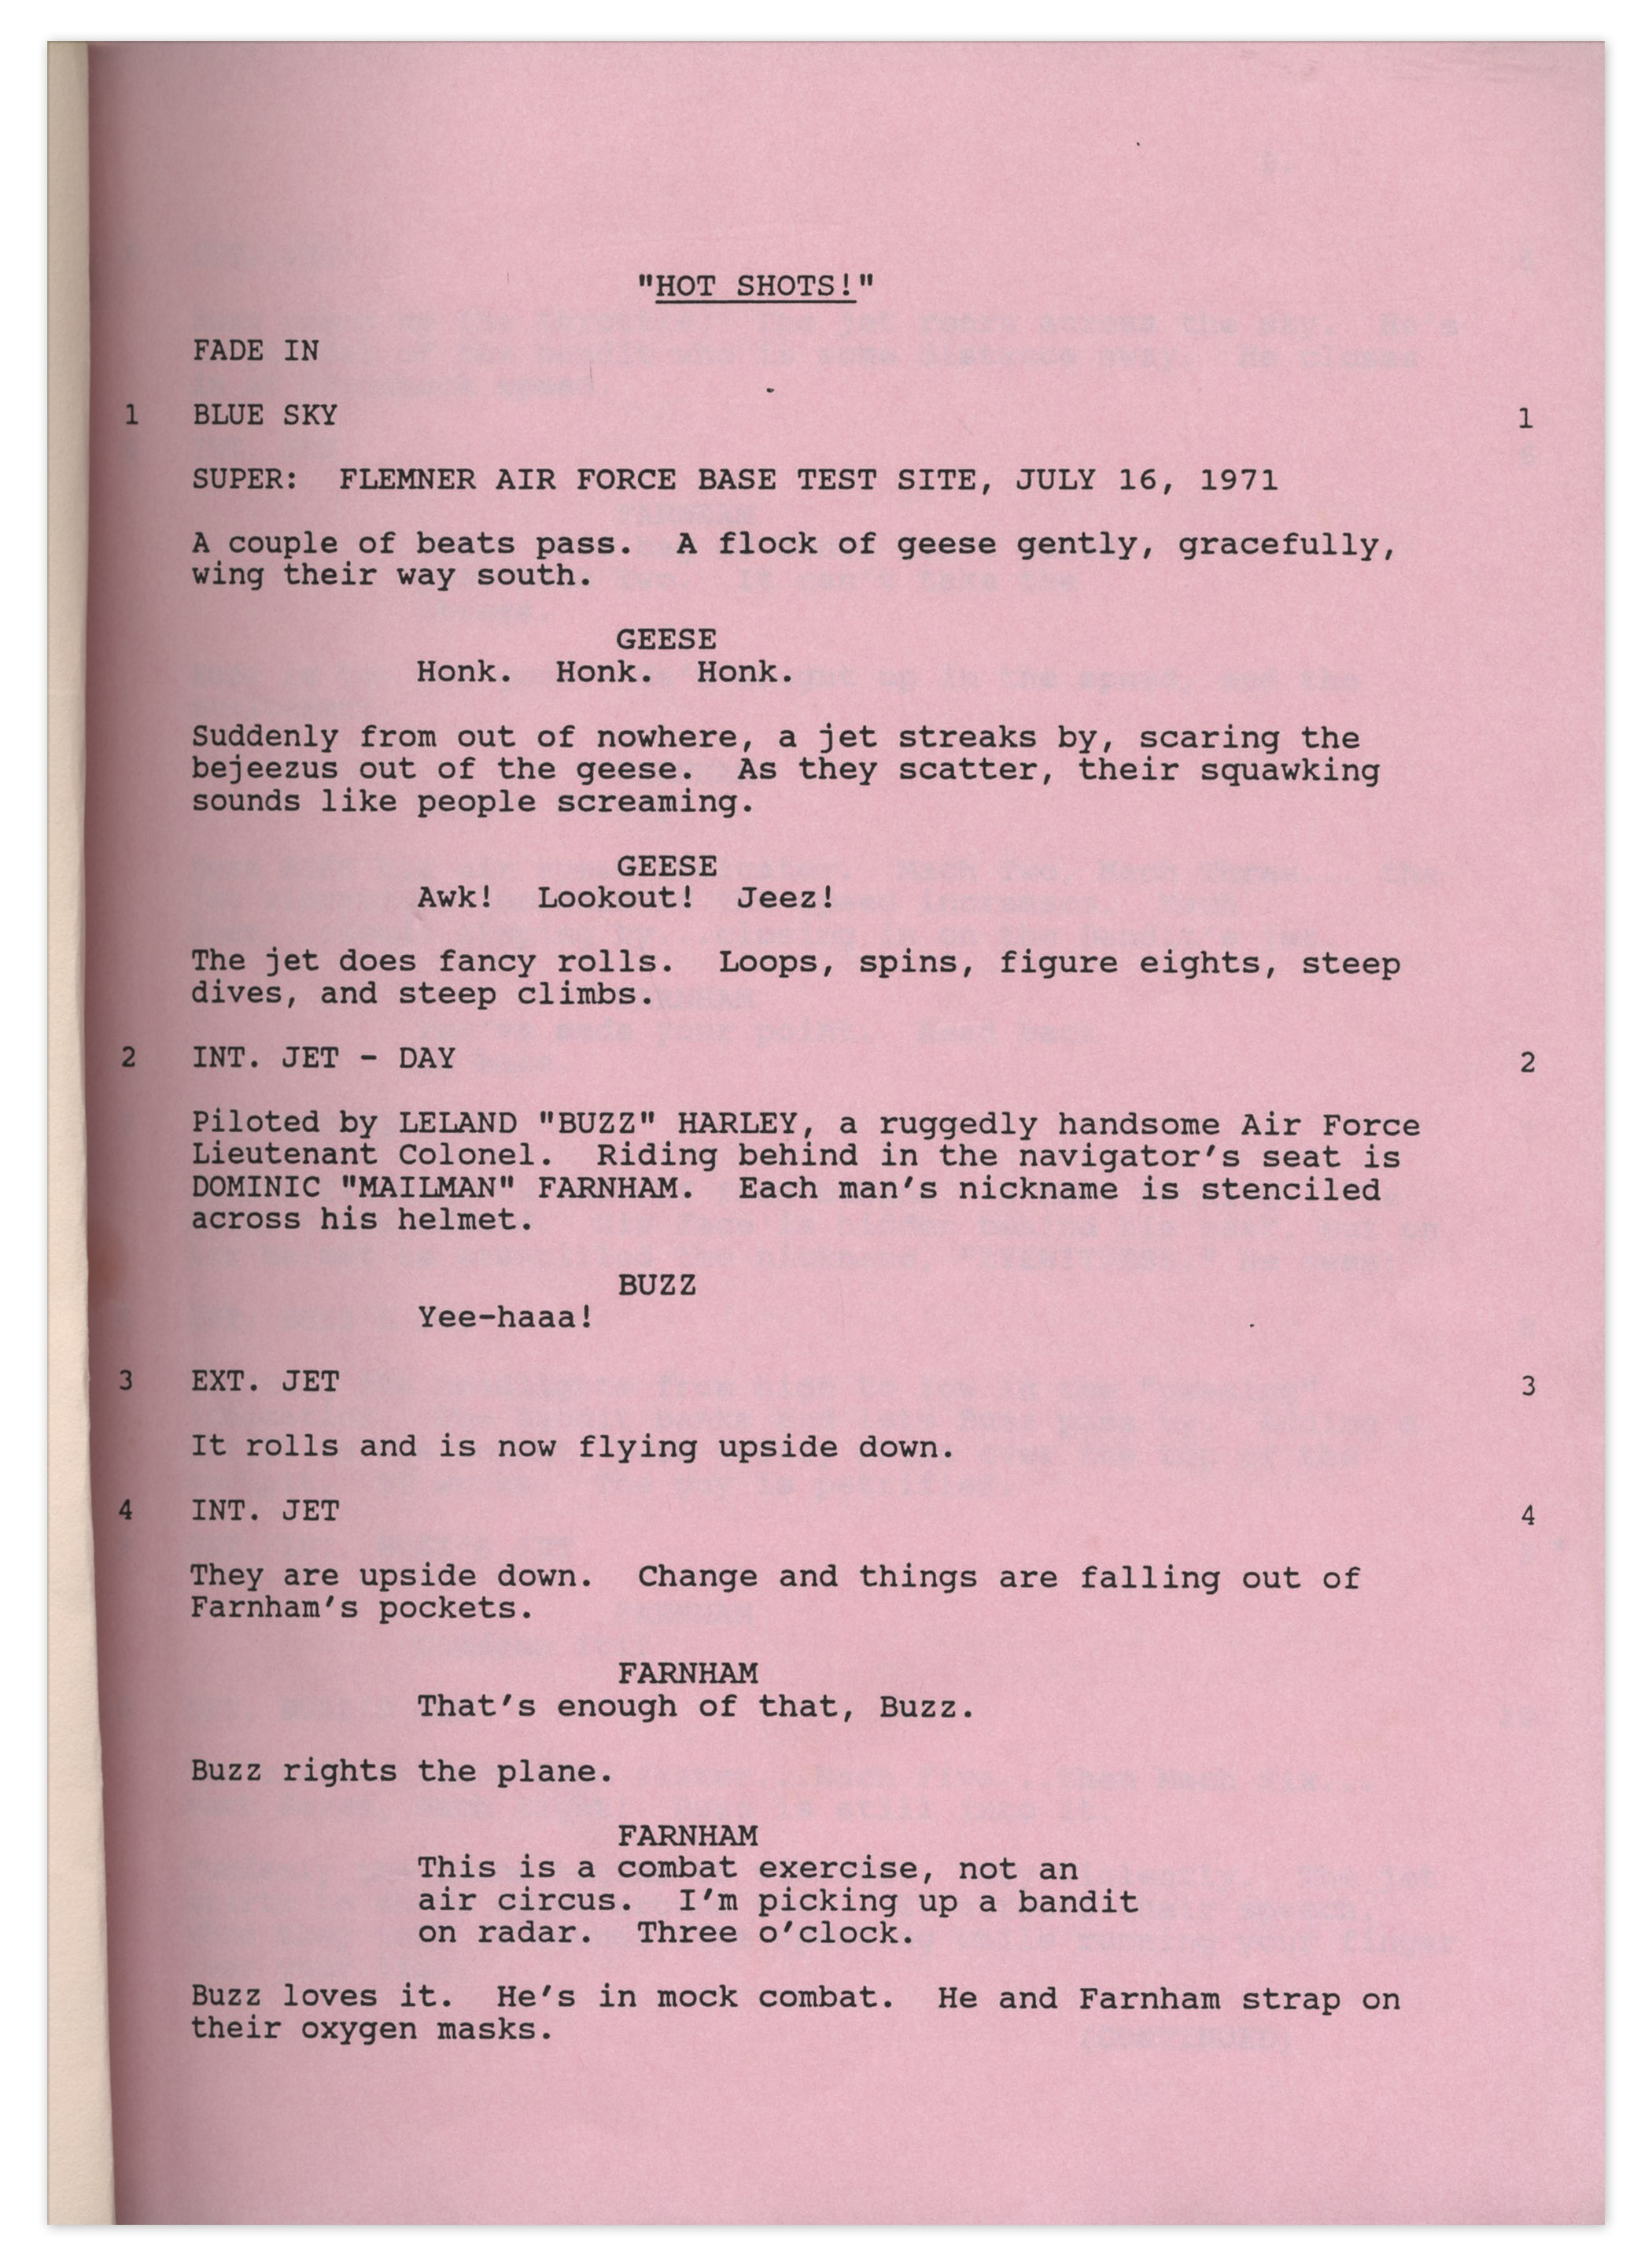 Sell your movie scripts